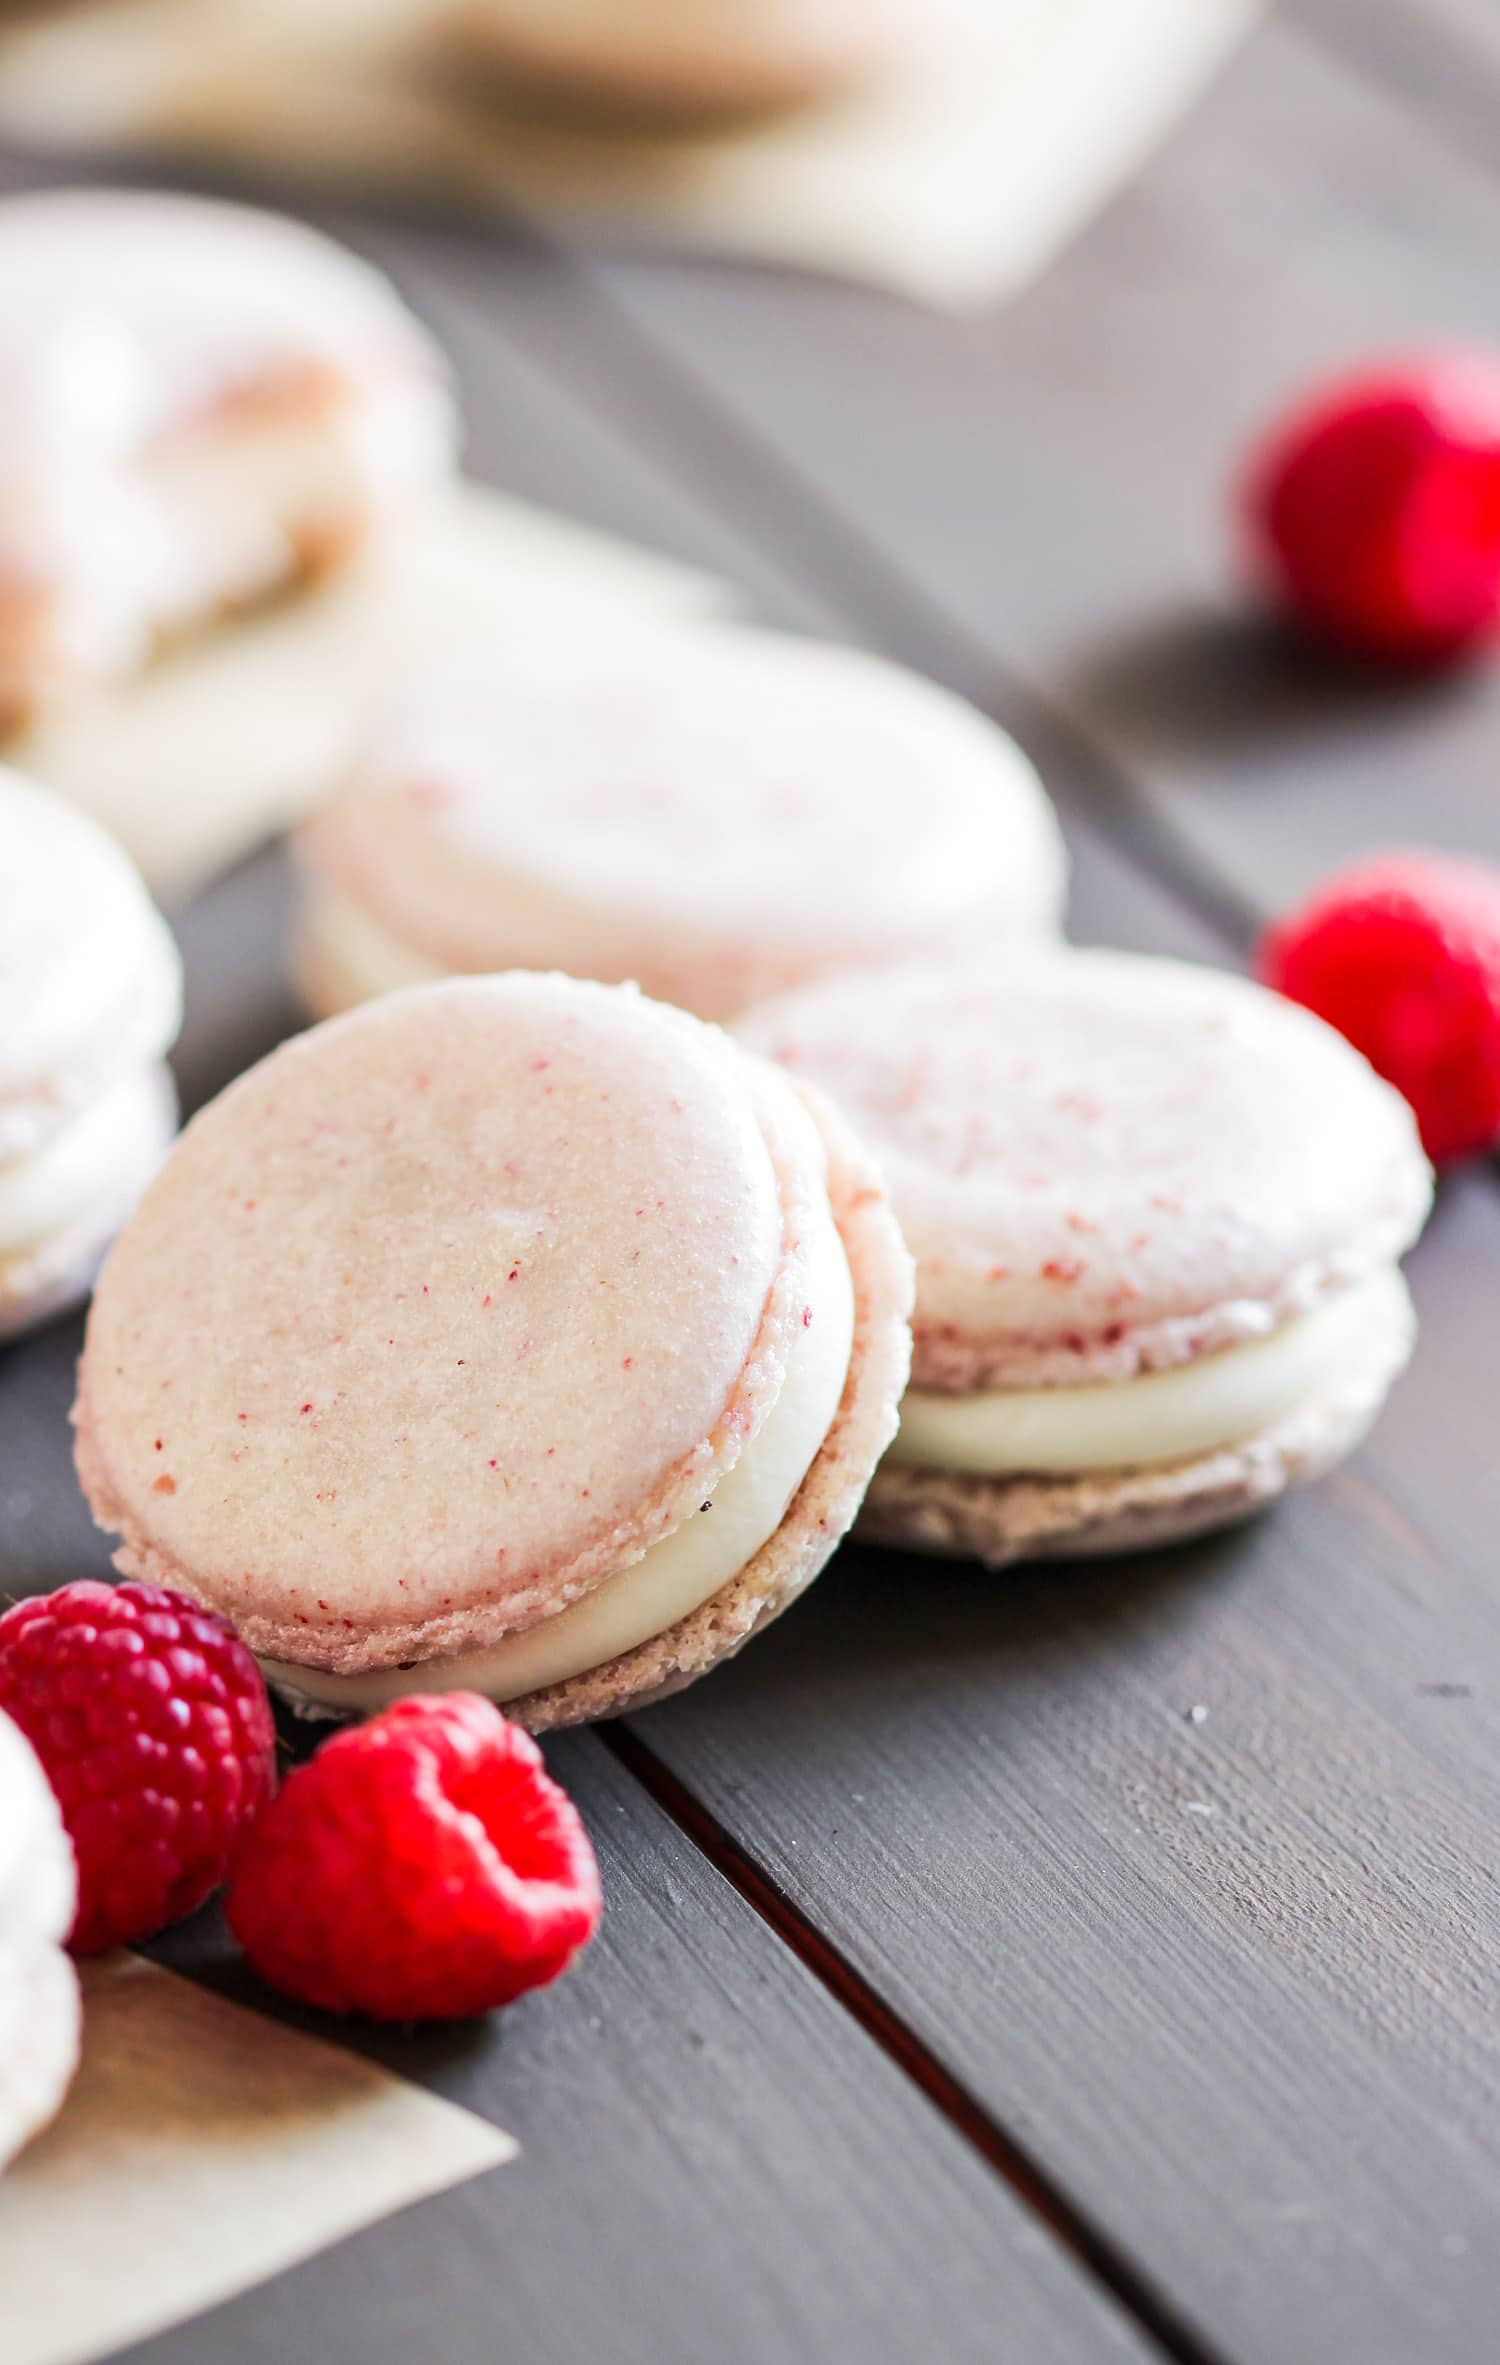 How to make Healthy Raspberry French Macarons! These are sweet, addicting, and packed with raspberry flavor, you'd never know they're made without white sugar, artificial flavorings, and artificial food dyes! These are all natural, low fat, and gluten free. PERFECT for Valentine's Day, birthdays and gifting! Healthy Dessert Recipes at the Desserts With Benefits Blog (www.DessertsWithBenefits.com)